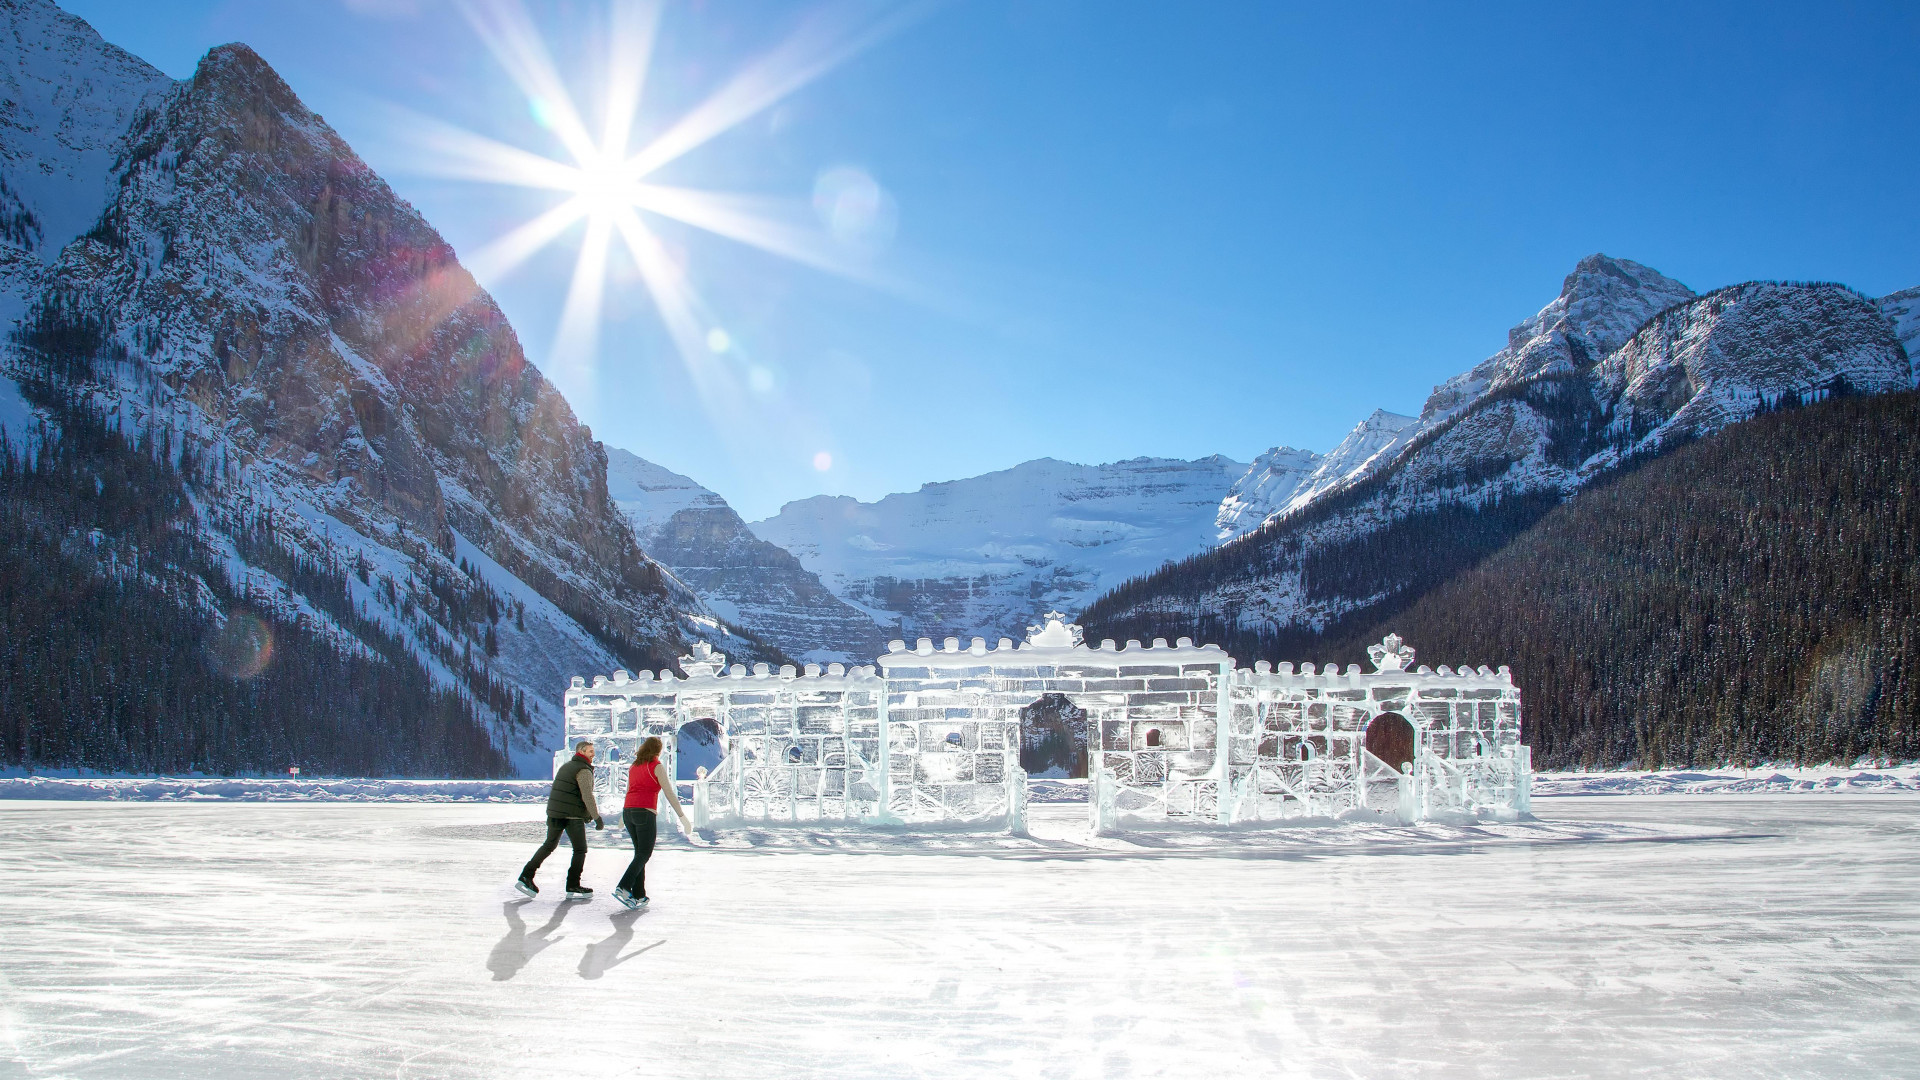 Ice skating at Fairmont Banff Springs, Canada